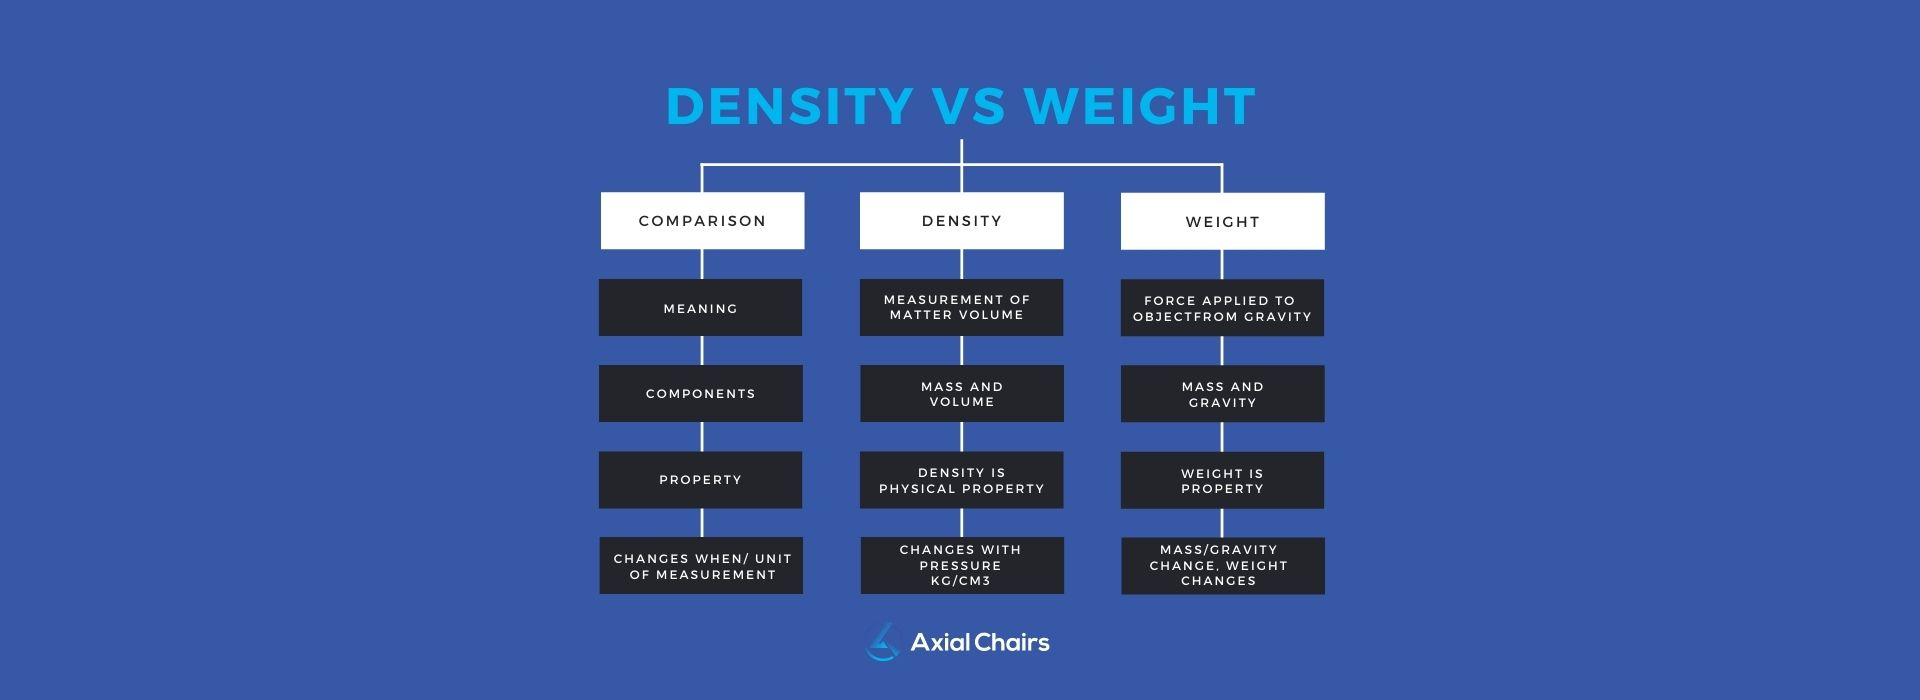 density vs weight seat cushions